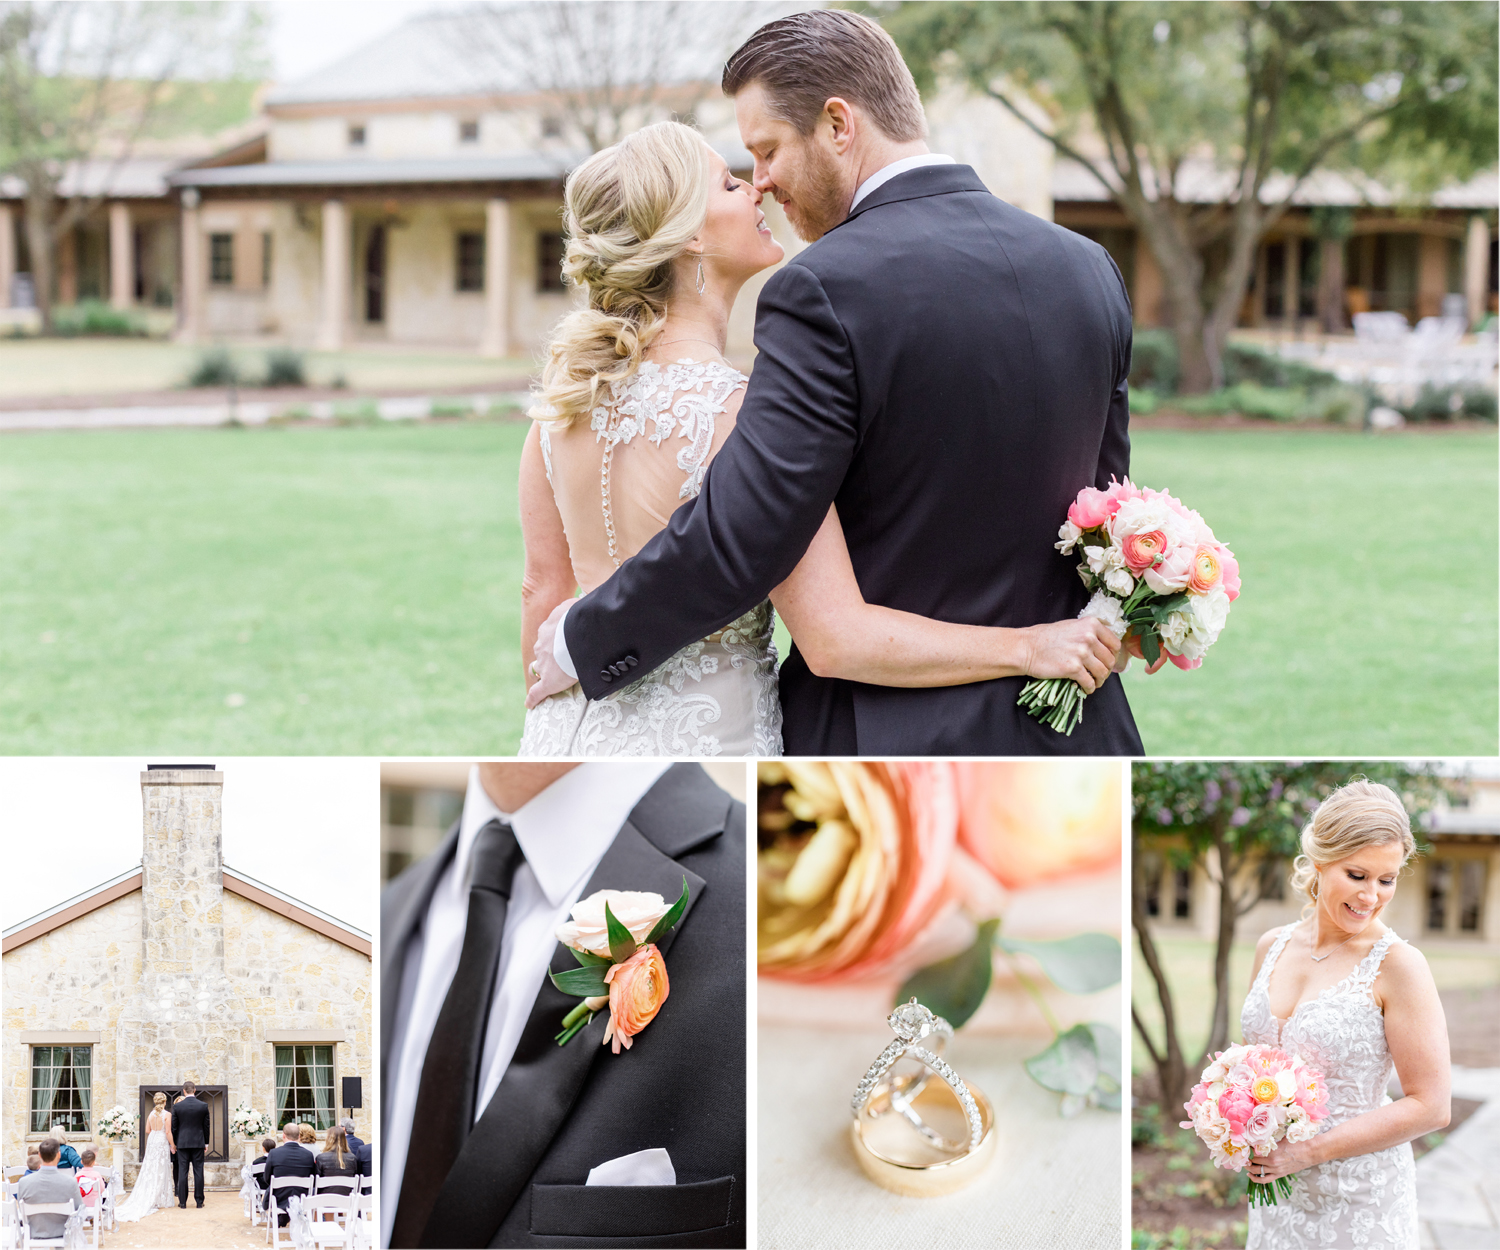 San Antonio Austin Boerne New Braunfels Texas Wedding Engagement Photographer Photography Hill Country Texas JW Marriott Sunday House Wedding Spring Wedding Coral Pink Intimate Wedding San Antonio Austin Texas photographer